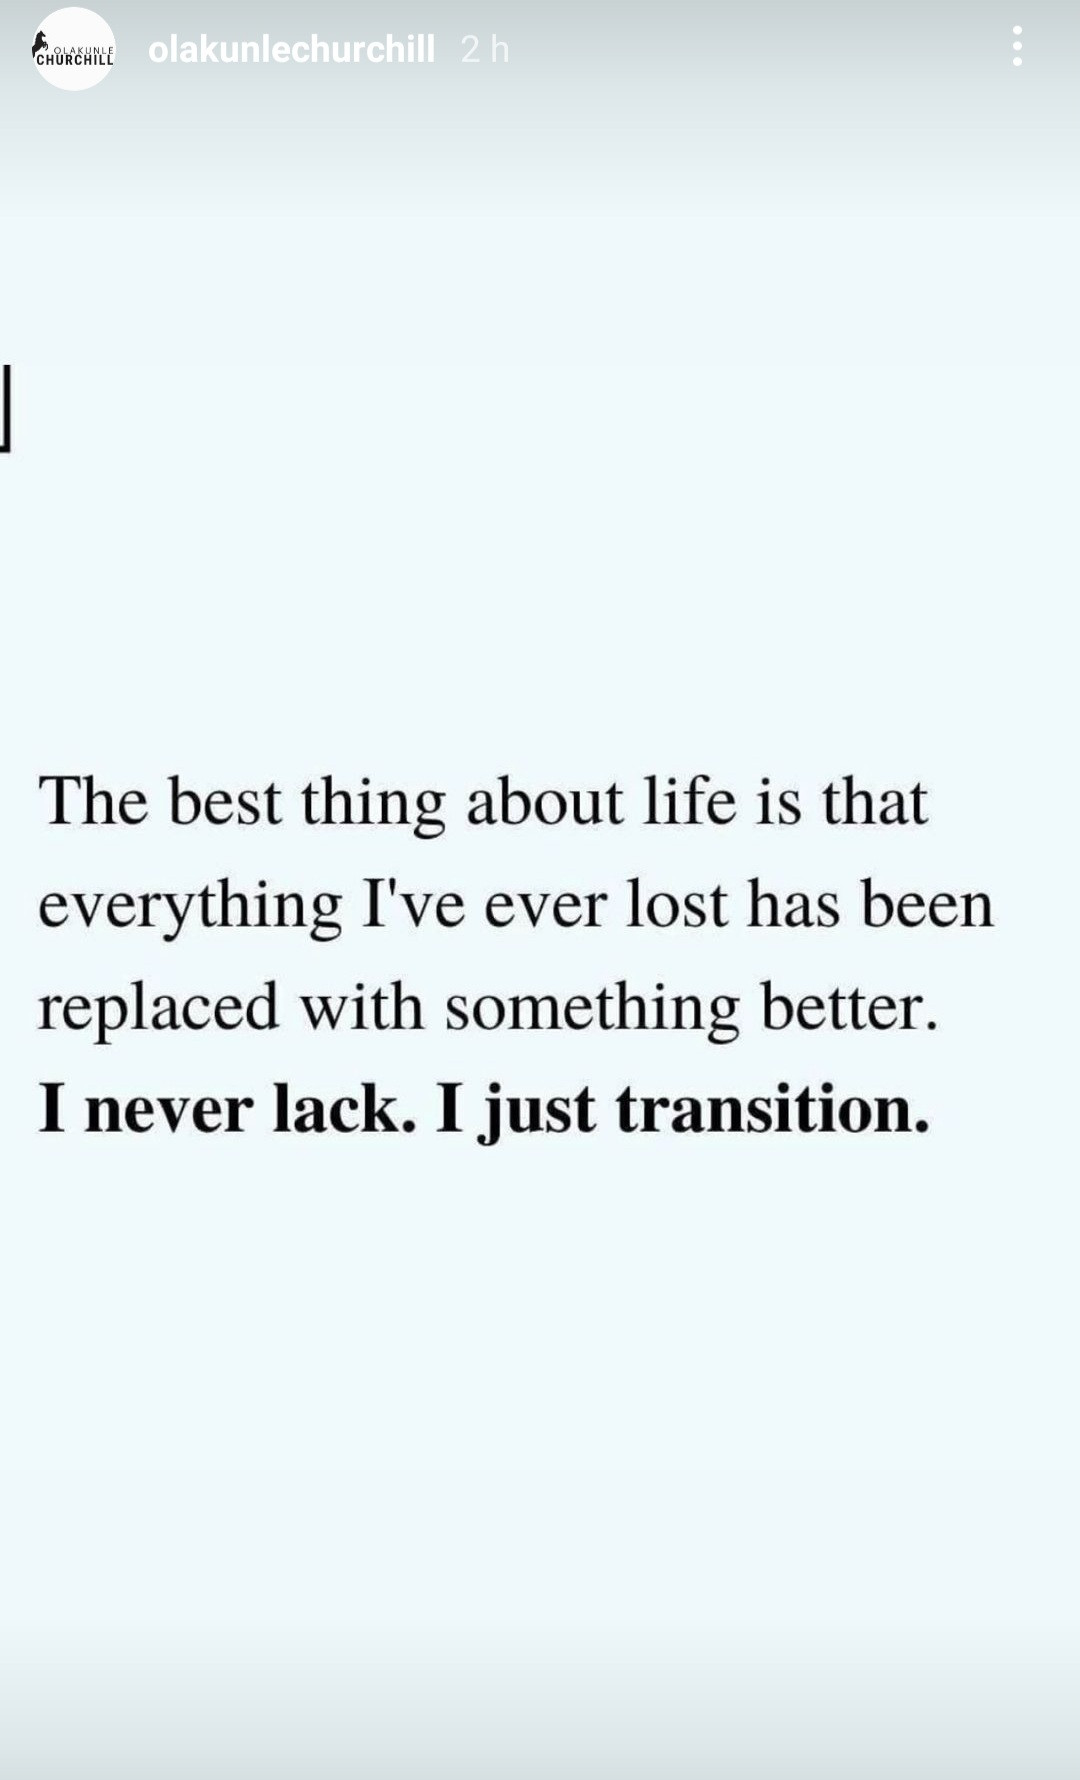 'Everything I Have Ever Lost Has Been Replaced With Something Better' - Olakunle Churchill